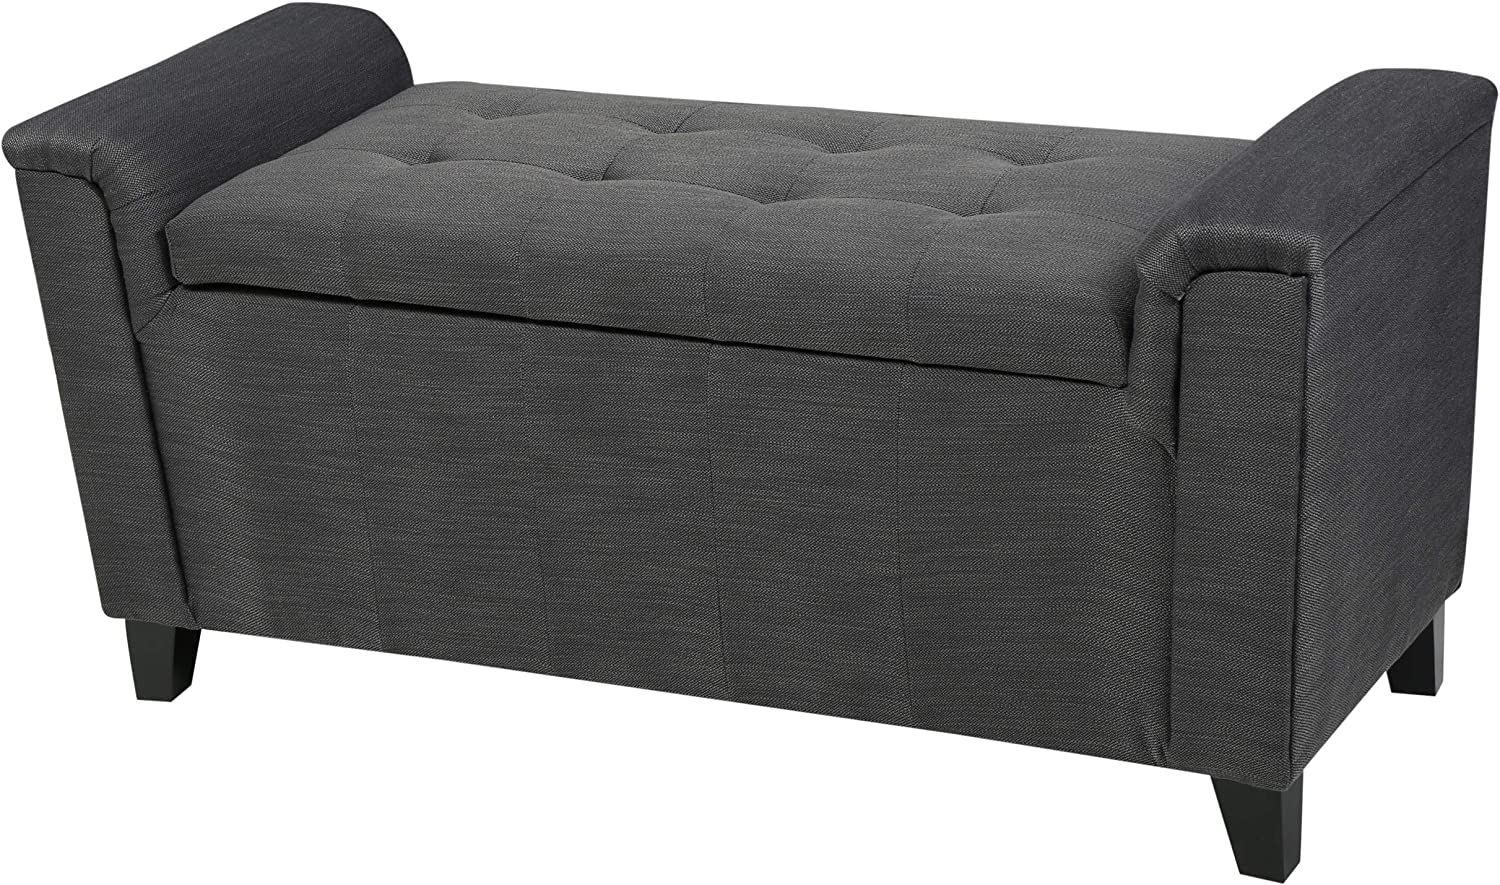 Christopher Knight Home Alden Armed Fabric Storage Bench, Grey